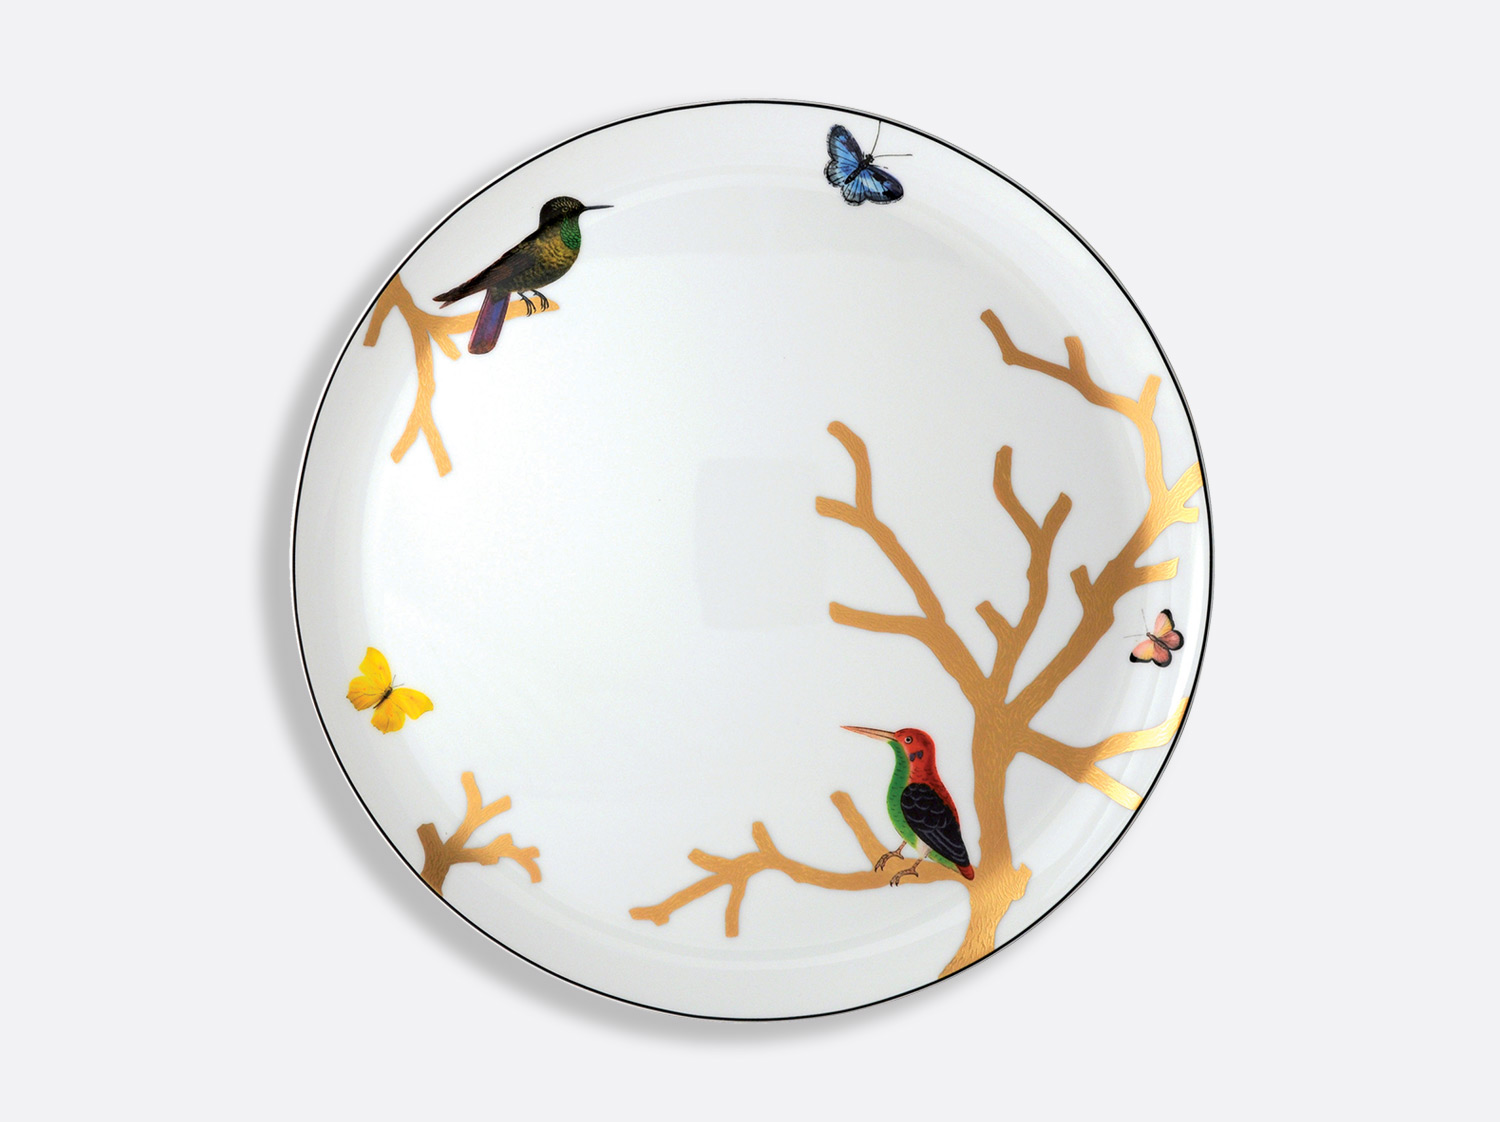 China Tart platter - round 32 cm of the collection Aux oiseaux | Bernardaud